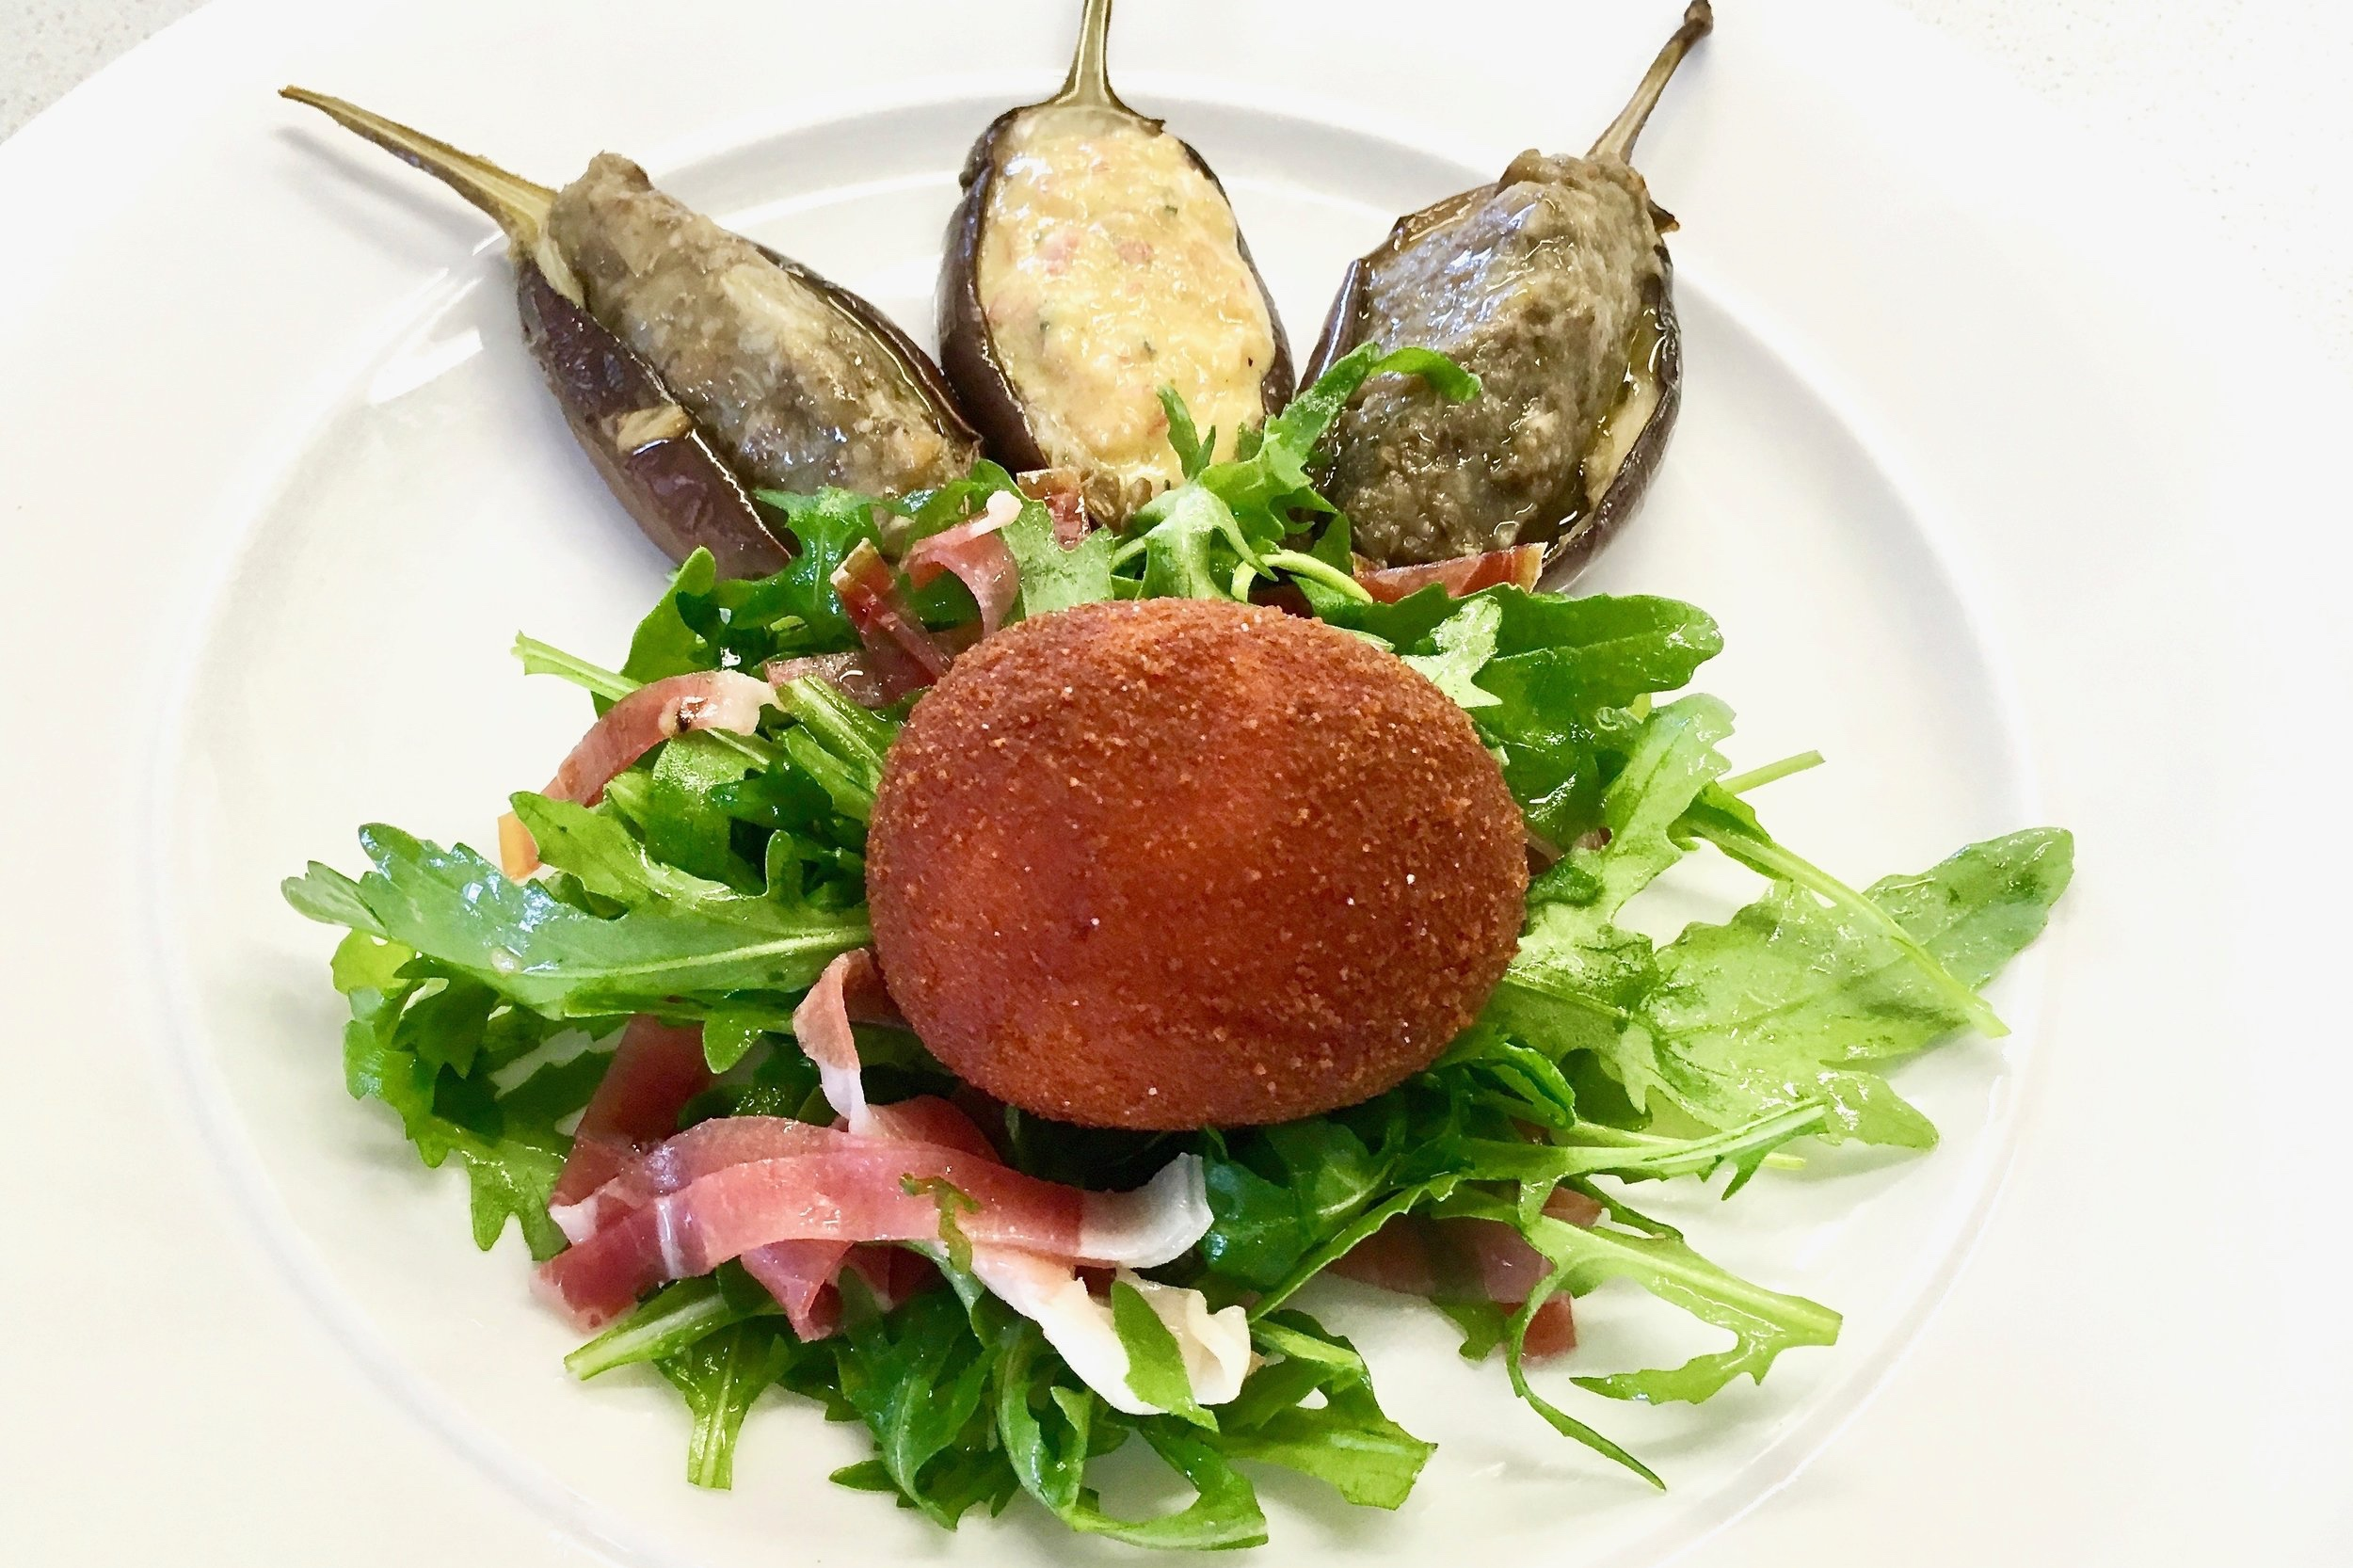 Egg in spiced breadcrumbs with a Bayonne ham salad in a red wine and shallot vinaigrette